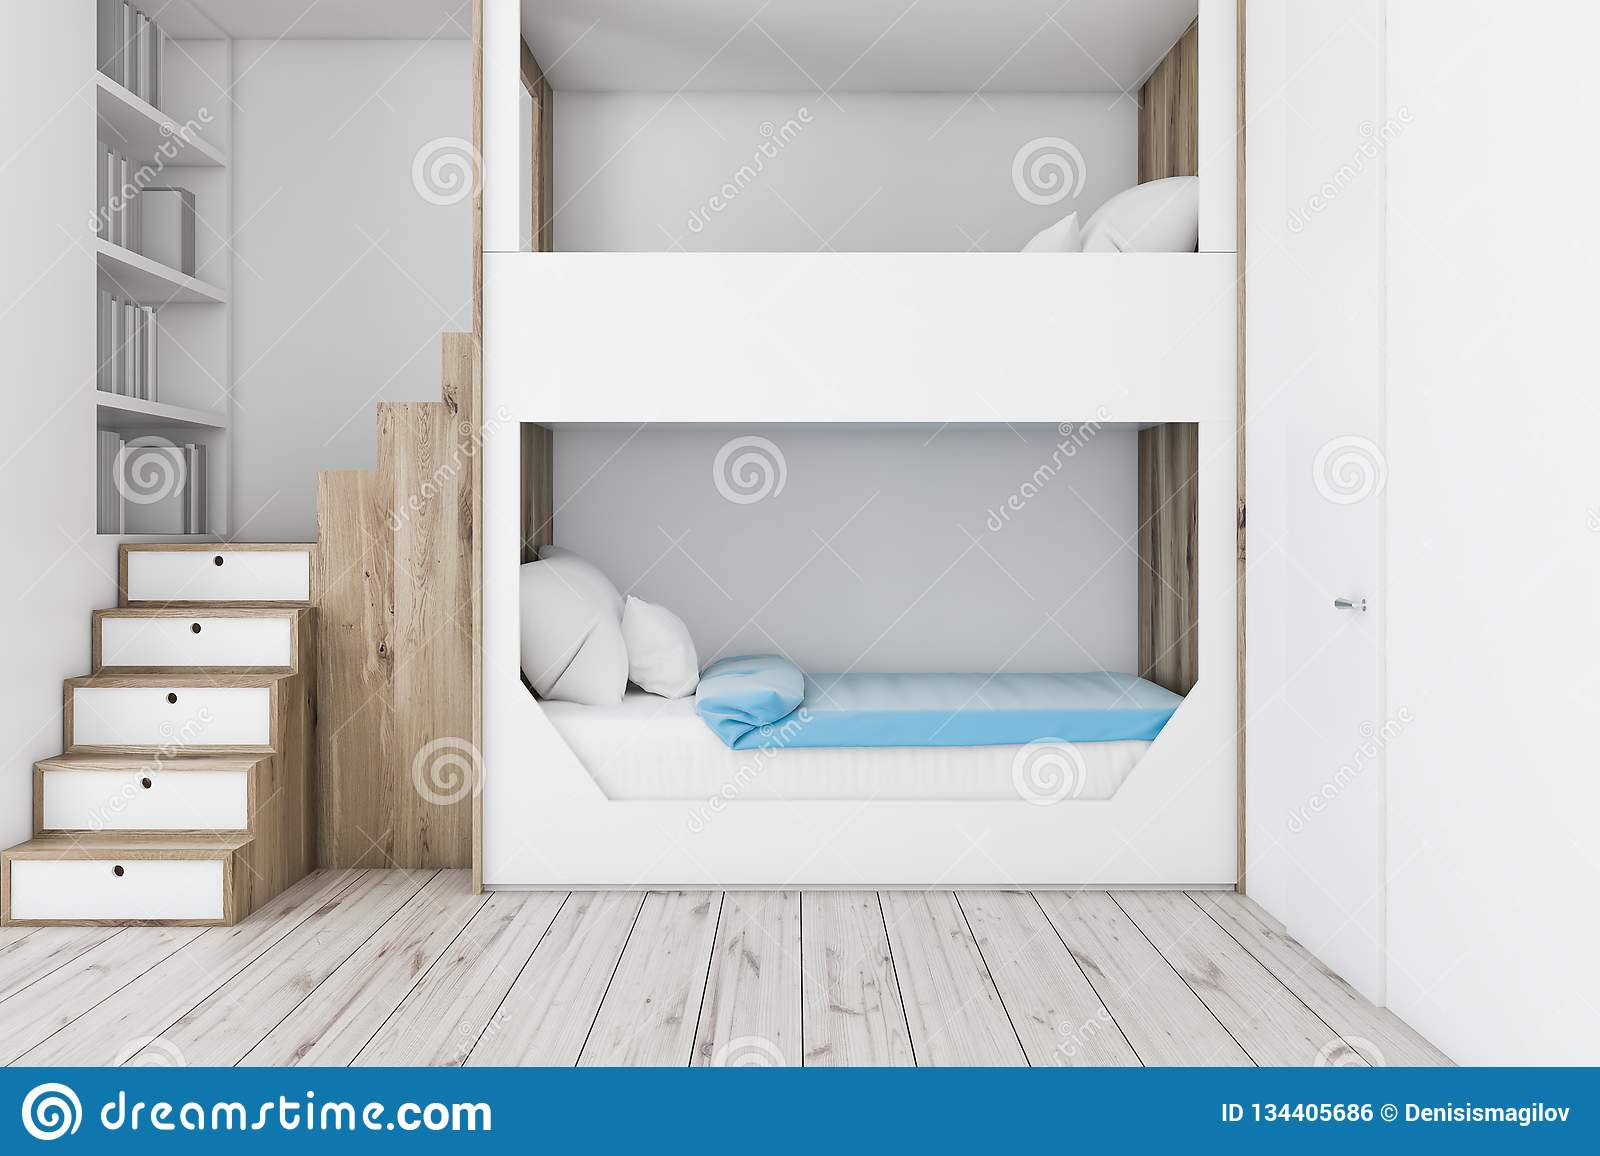 White Bunk Bed Bedroom Interior Stock Illustration